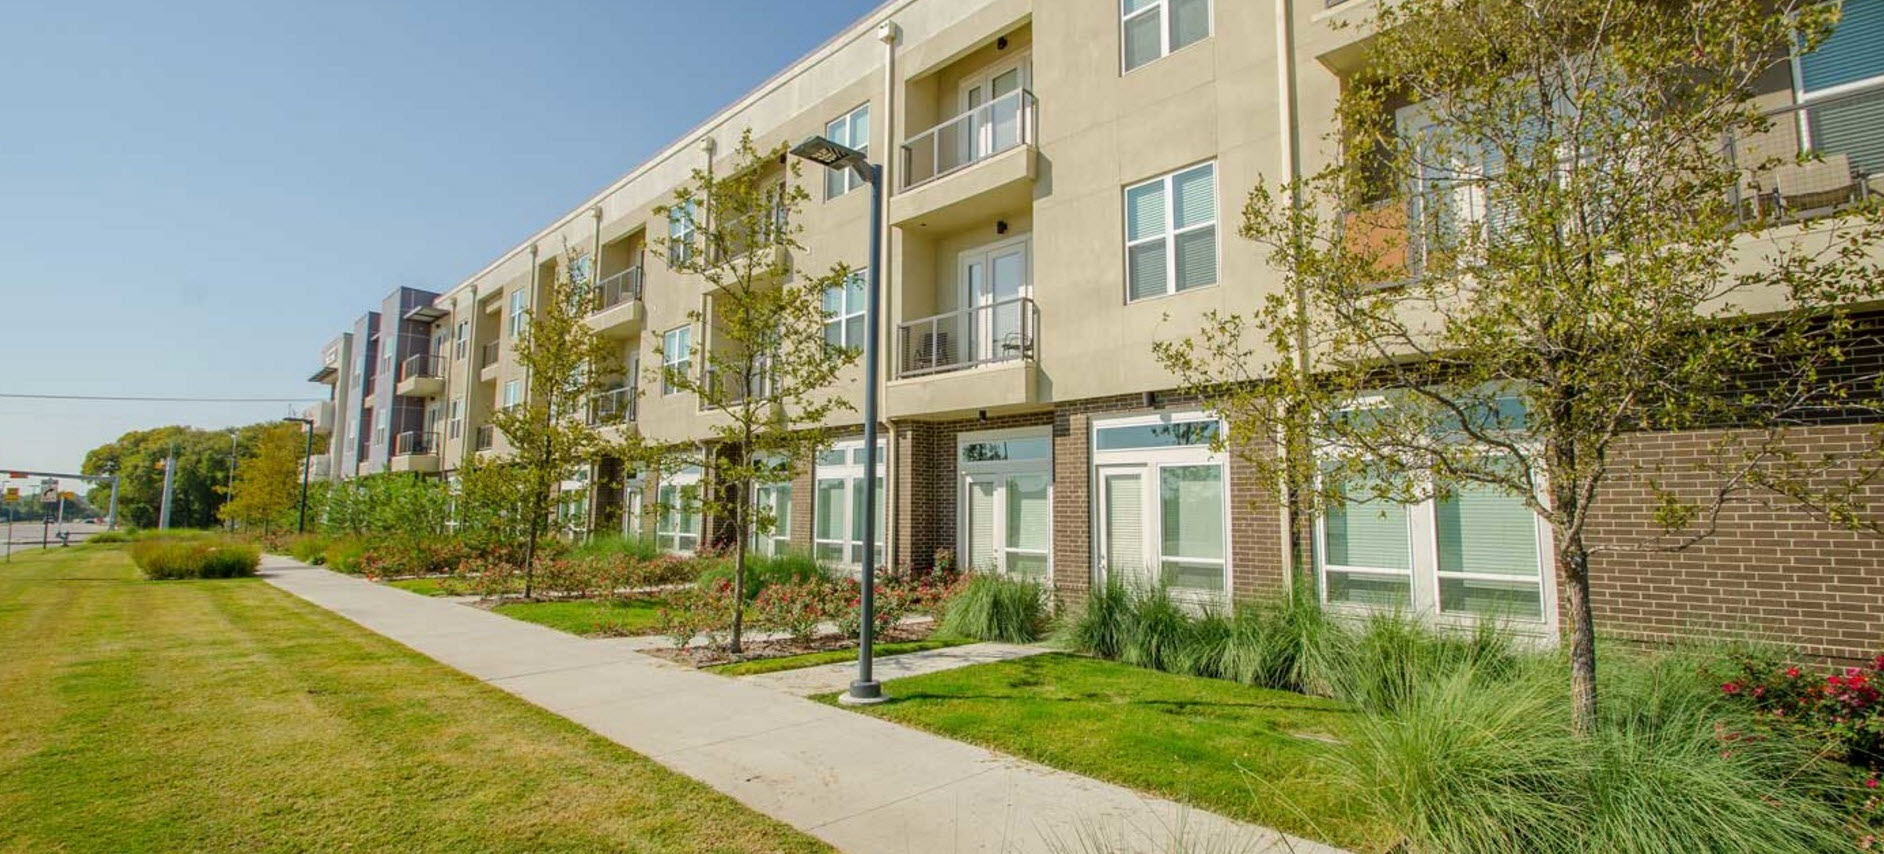 Image showing apartments for rent in plano tx